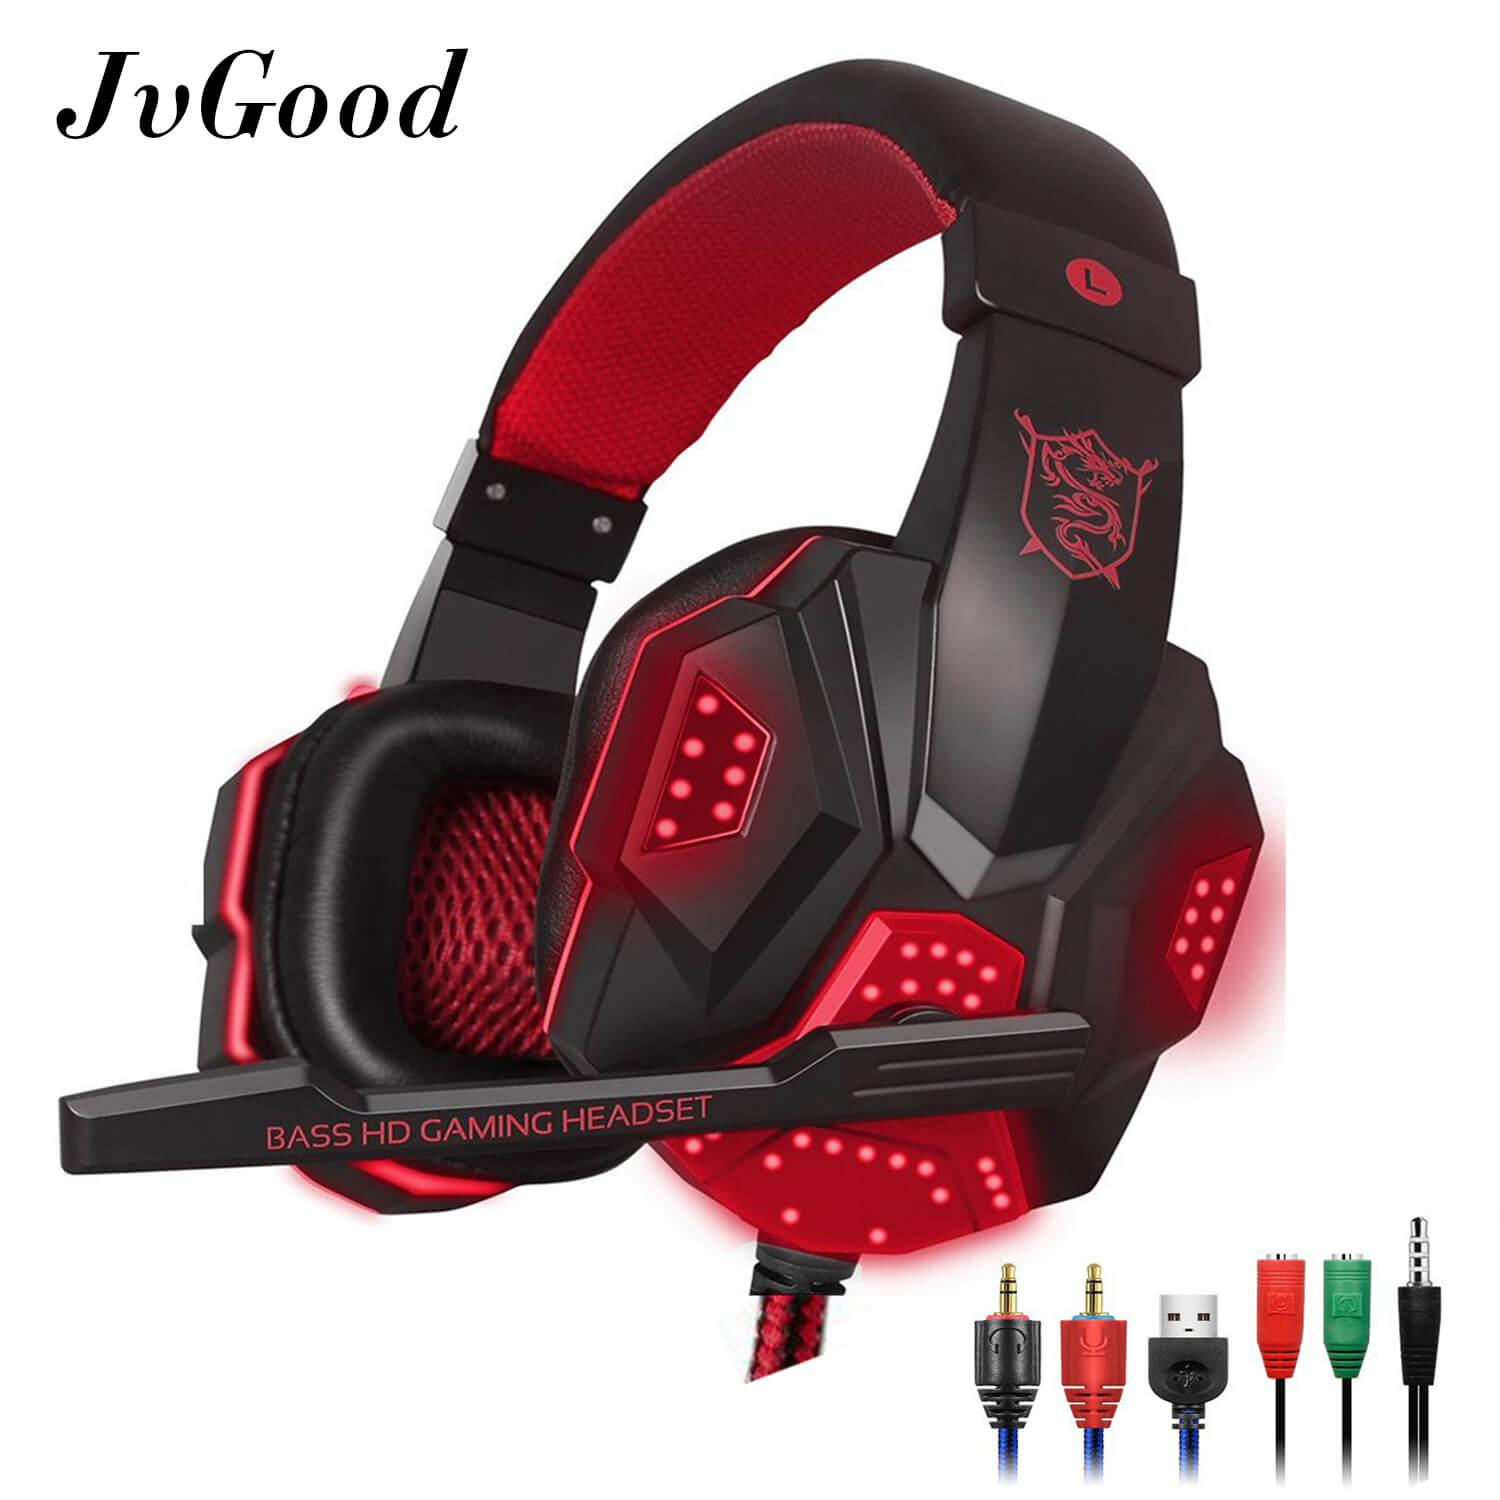 Jvgood Permainan Headset Wired Gaming Workout Headphone Sport Earphone With Mikrofon Untuk Iphone Ipad Android Telepon By Jvgood.